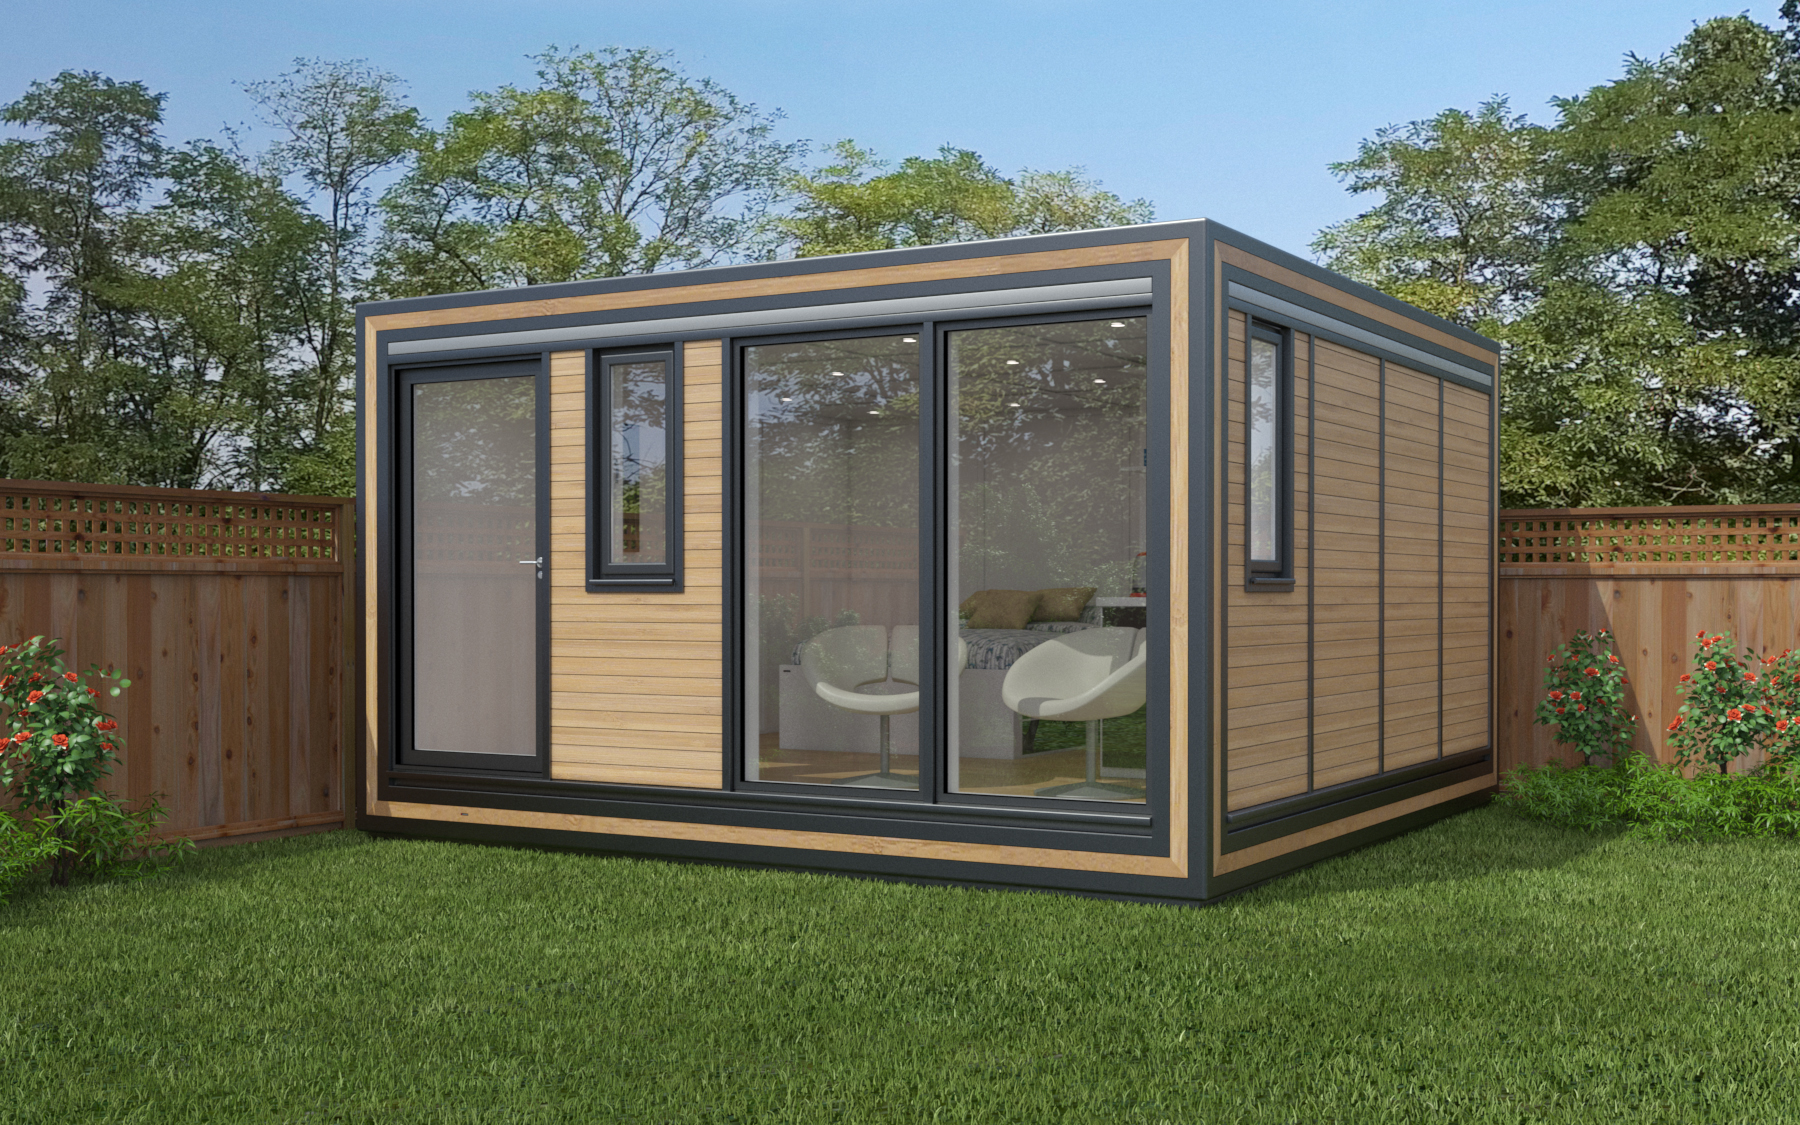 ZEDBOX 440  (4 x 4)  Internal Size: 4259 x 4259  External Size: 4279 x 4279  Bed Options: Single or Double  Kitchen Options:Micro or Premier  Wet Room Options: Yes  Portico: No  Price:  £30,000    Optional Extras    Request Zedbox Catalogue